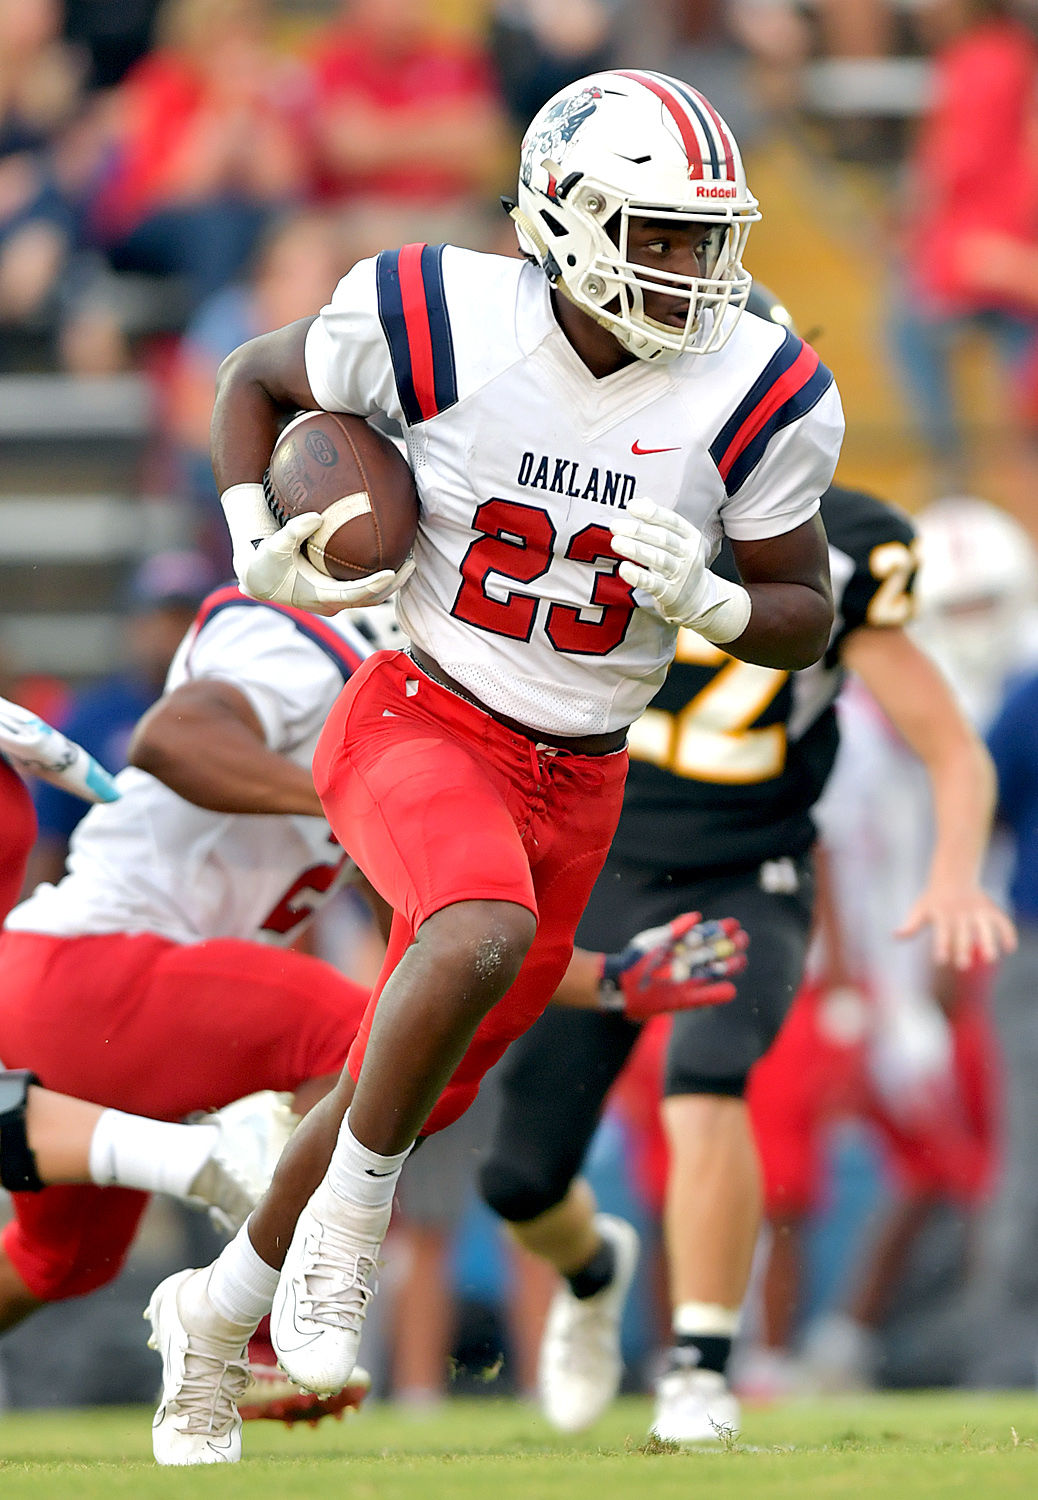 BJ Connard finished the first half with 125 yards and one touchdown to lead the Patriot rushing attack. DON MCPEAK